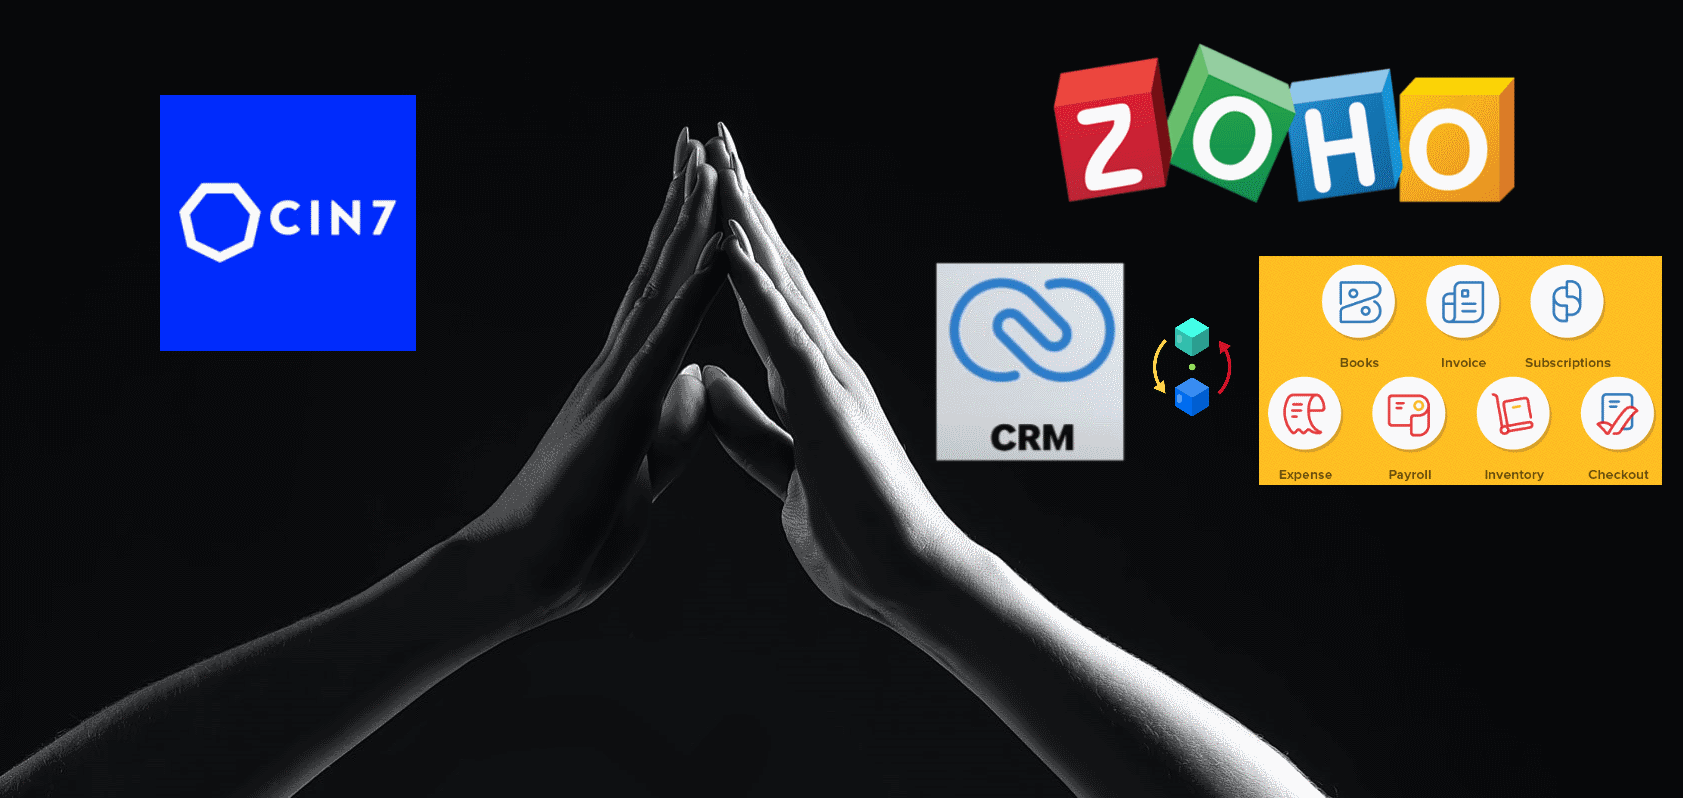 Cin7 and Zoho CRM integration